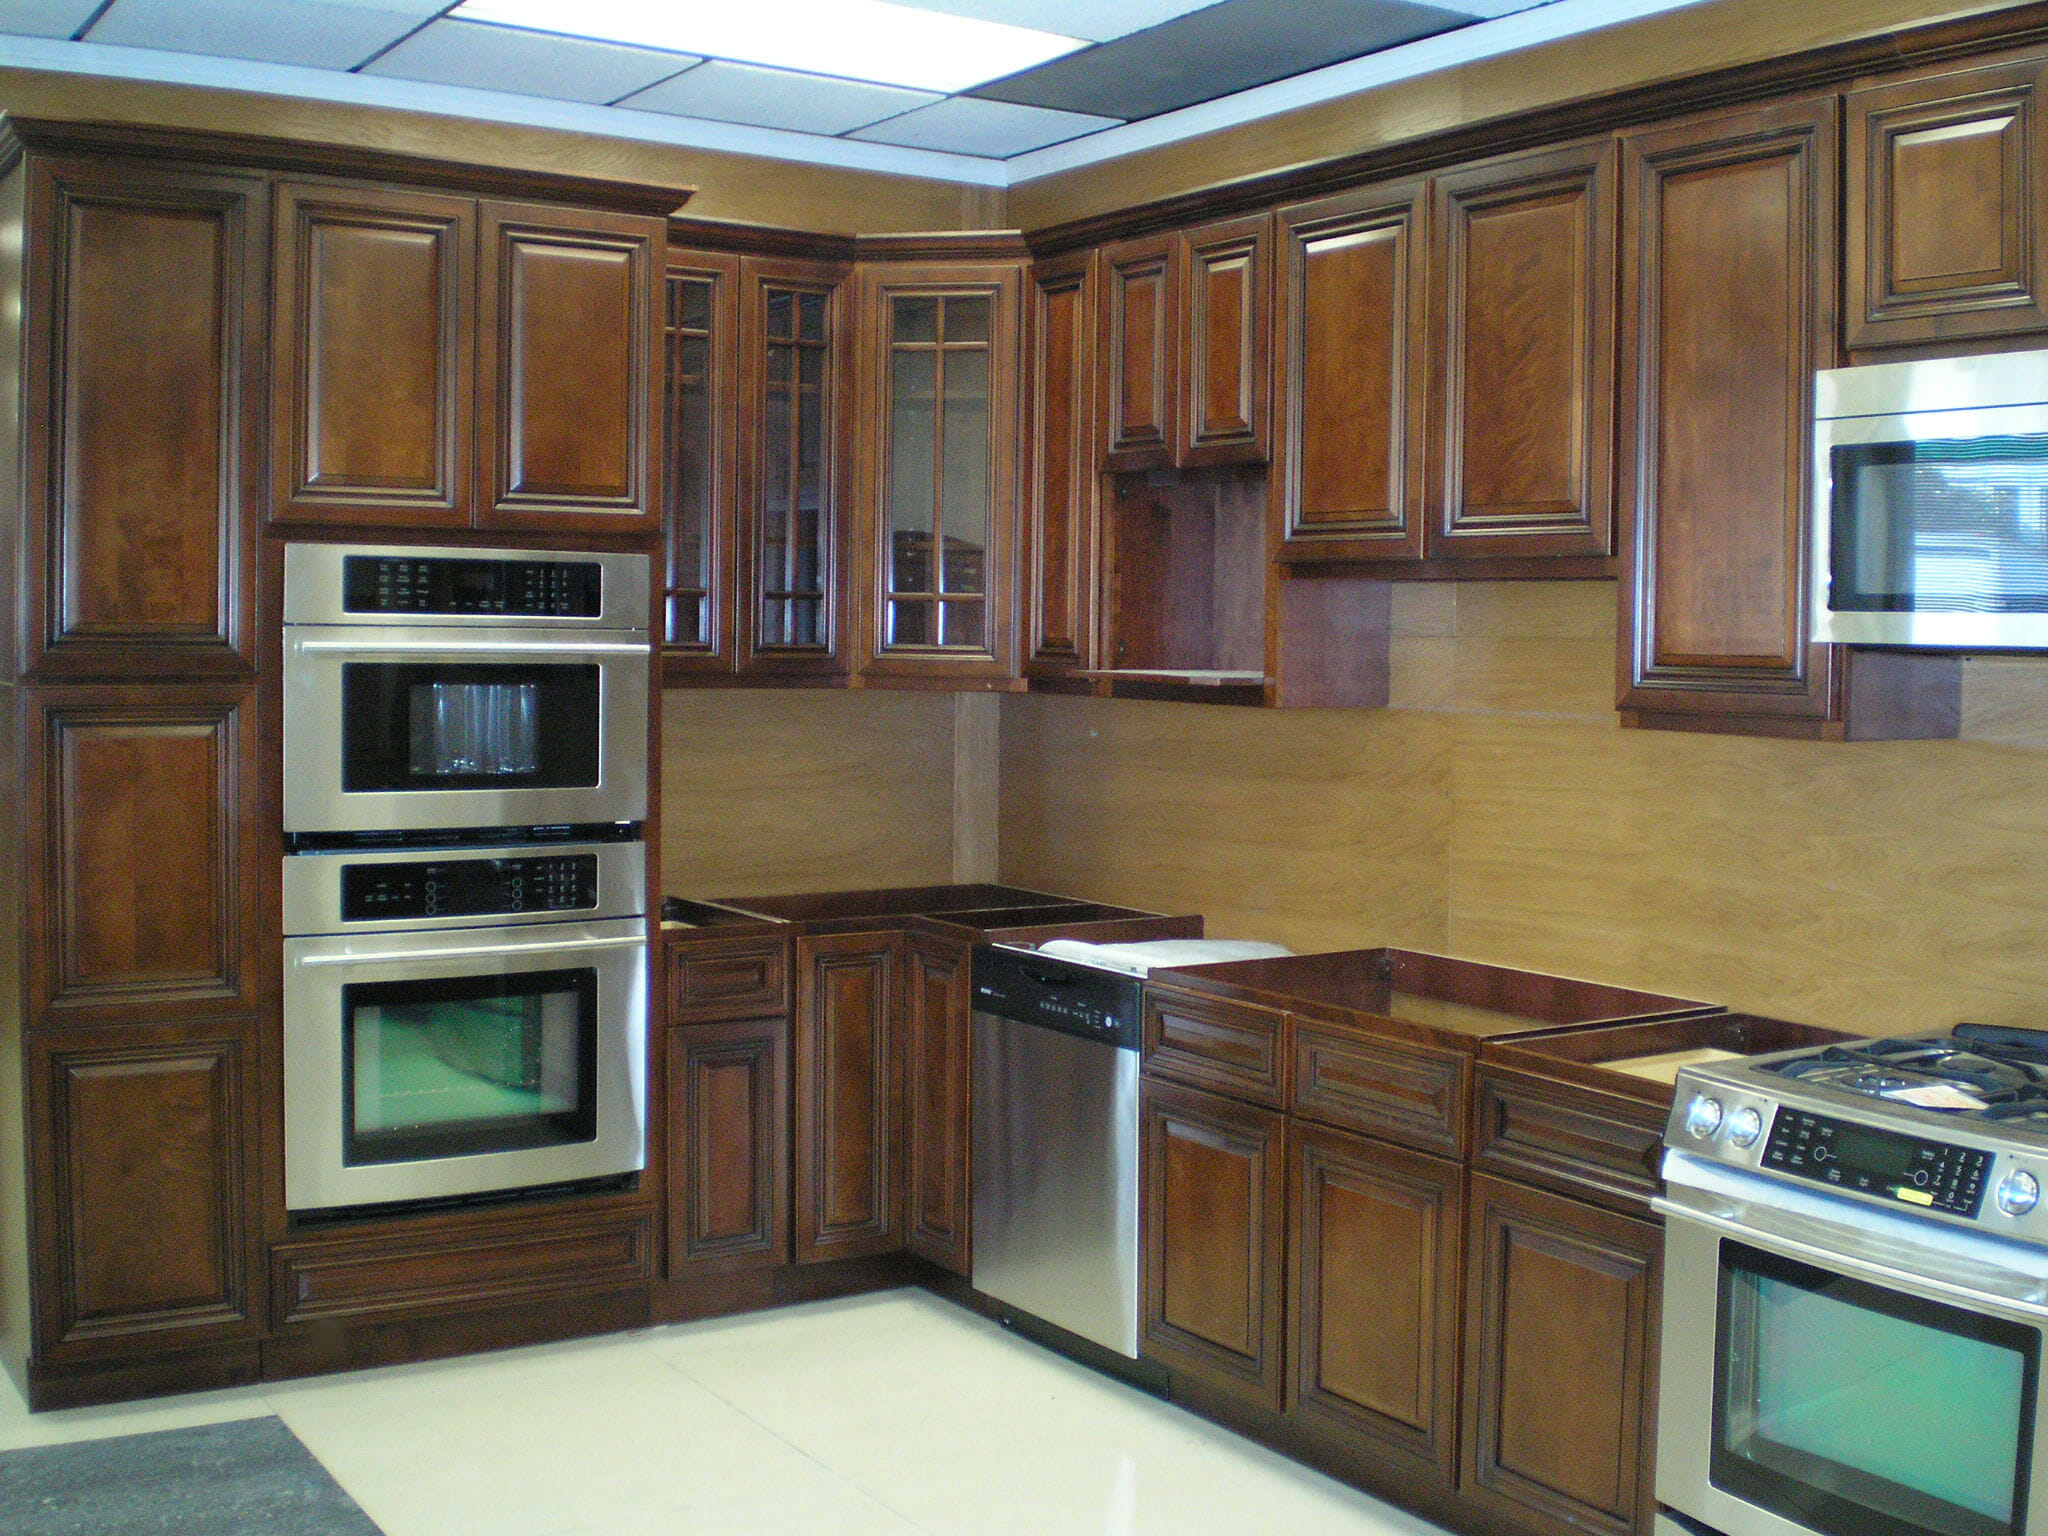 walnut kitchen cabinets walnut kitchen cabinets OLYMPUS DIGITAL CAMERA